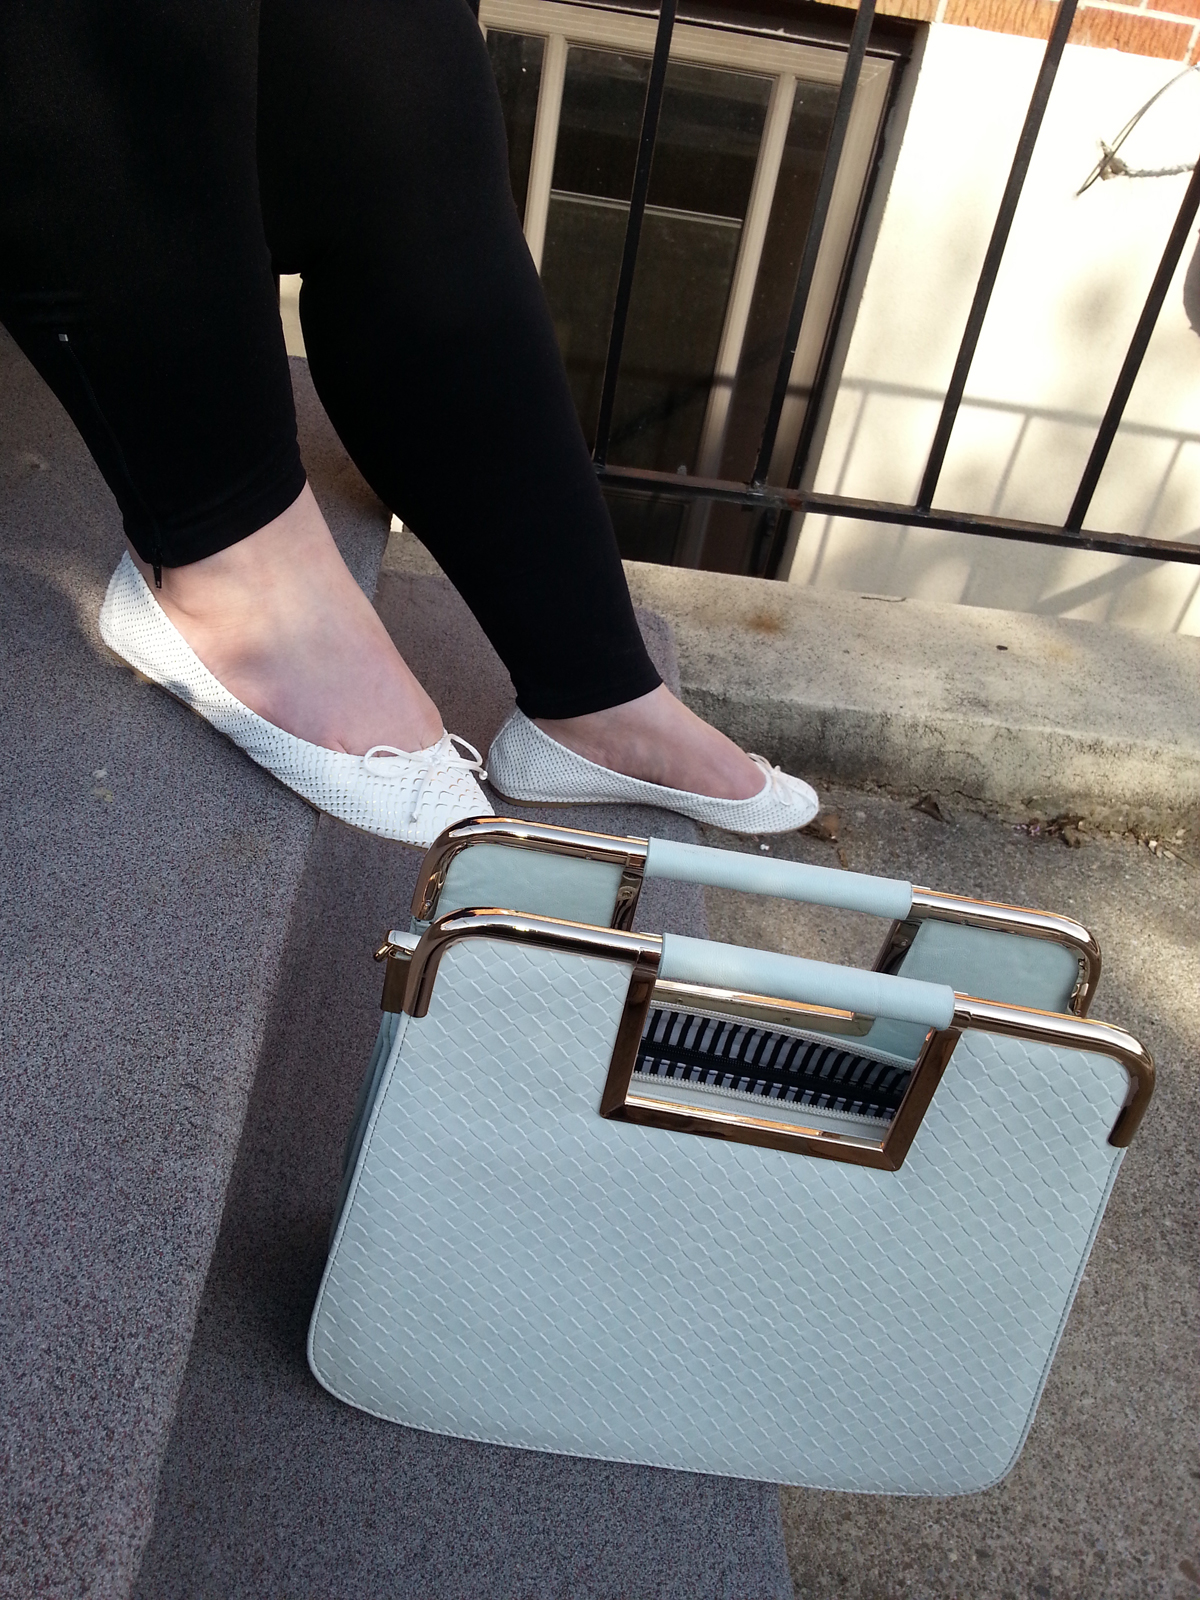 JustFab.ca Sola flats and Minimalist handbag